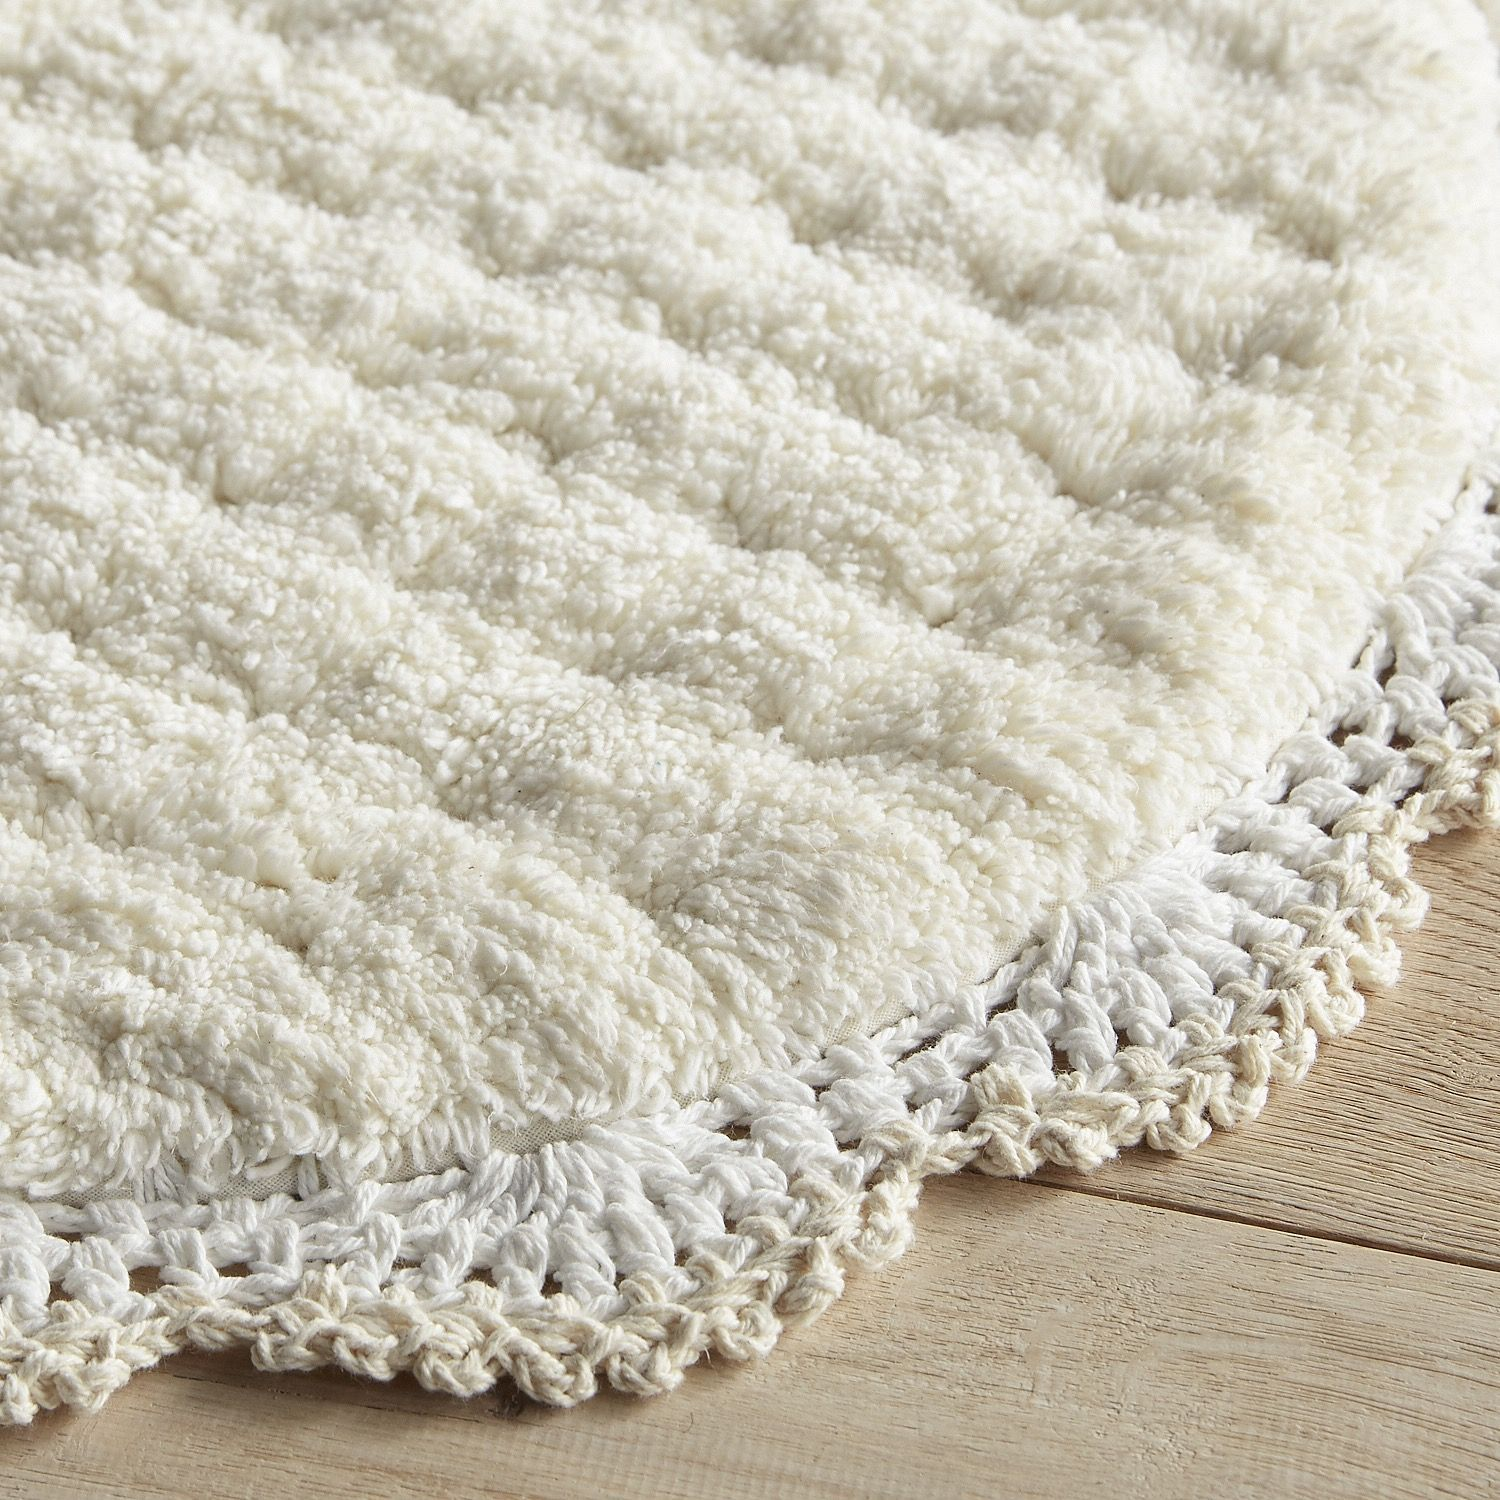 Crochet Edge Linen Bath Rug Tan